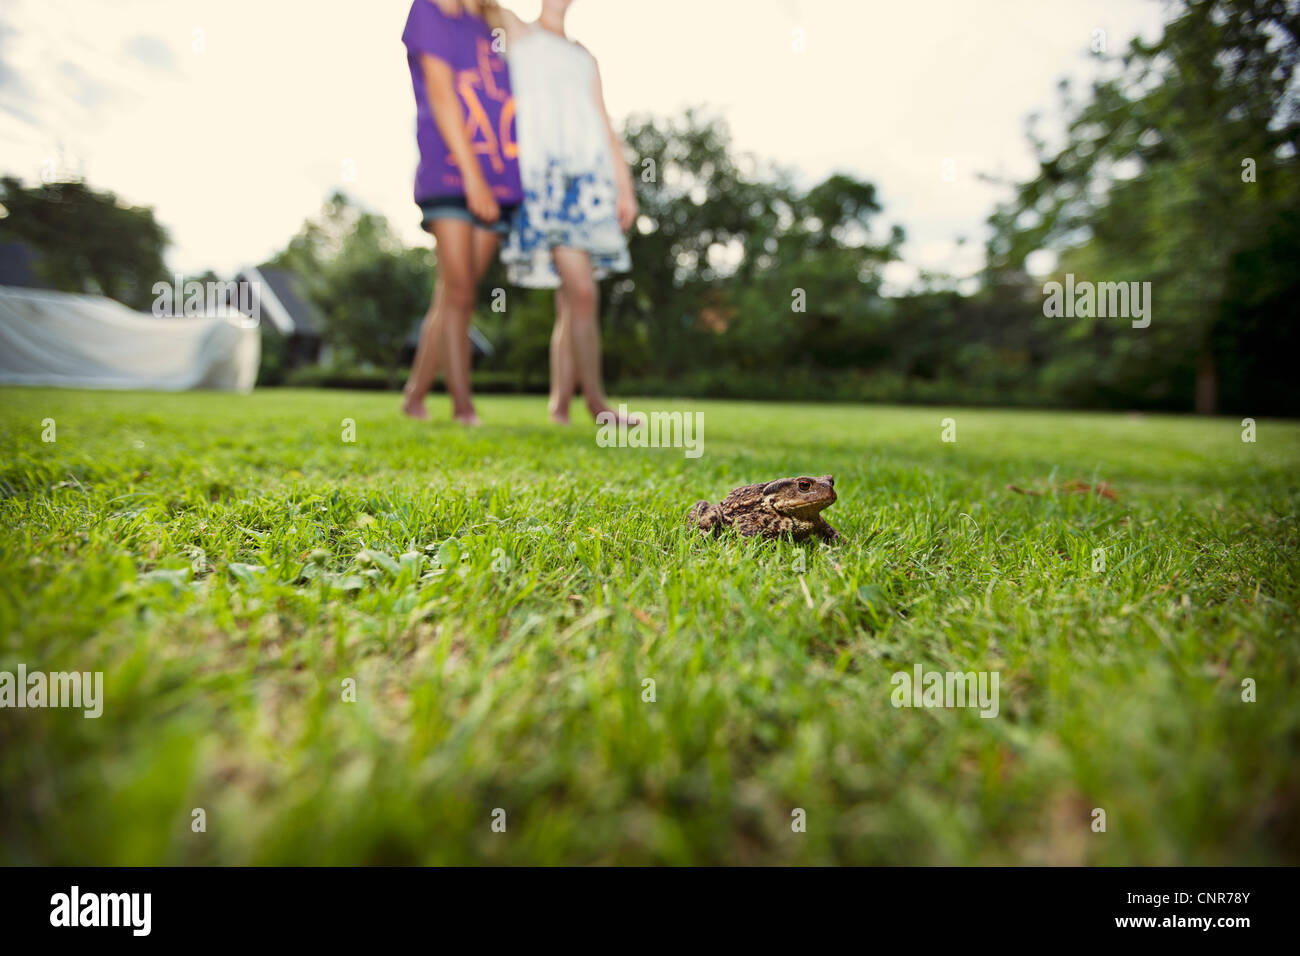 Frog crouched in grass in backyard Stock Photo